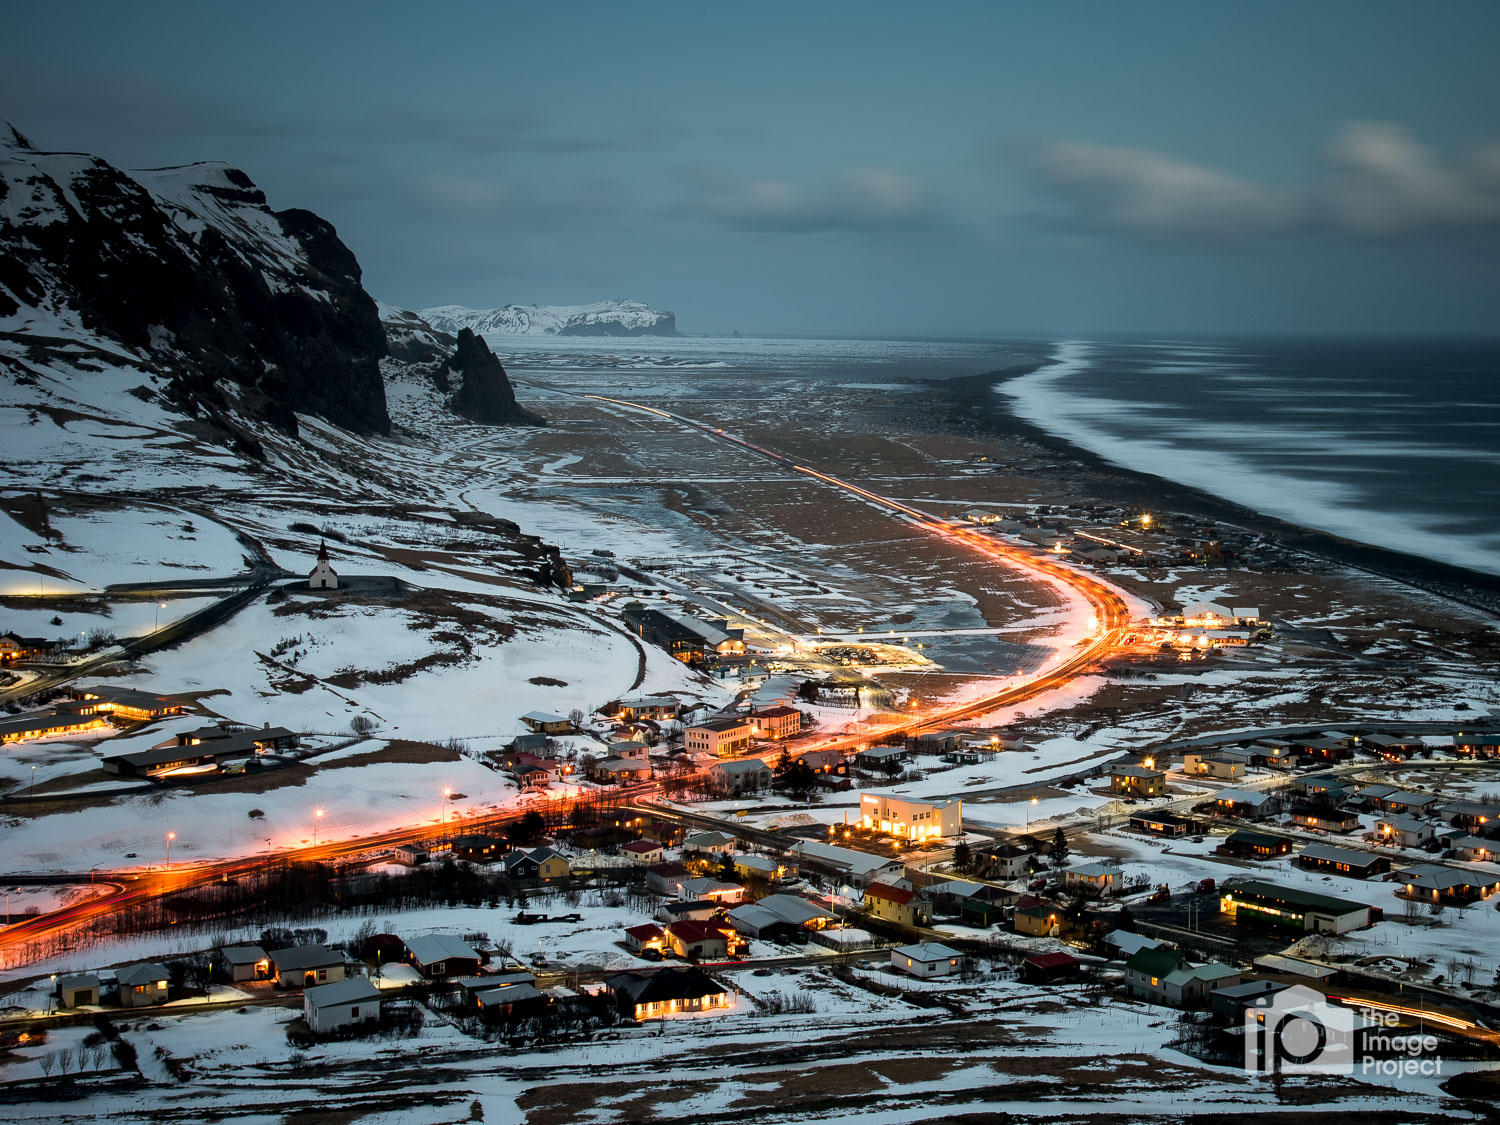 night descends on vik south iceland by sea long exposure light trails by nathan barry the image project